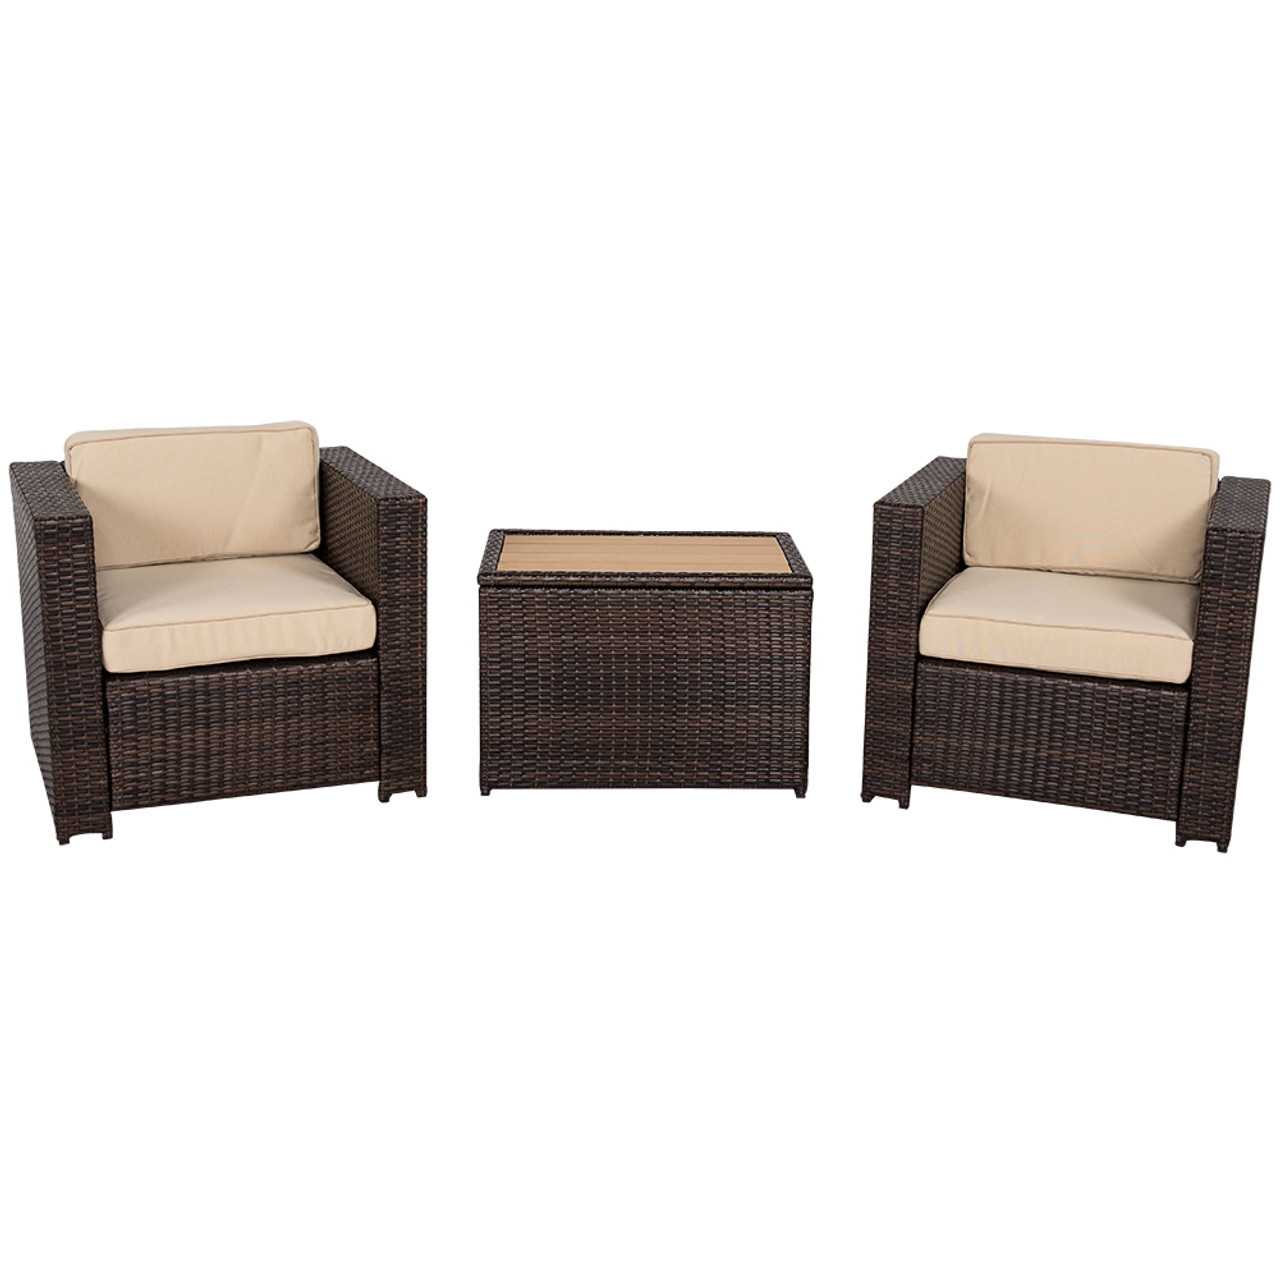 3 piece aluminum wicker chat set all weather chat group with